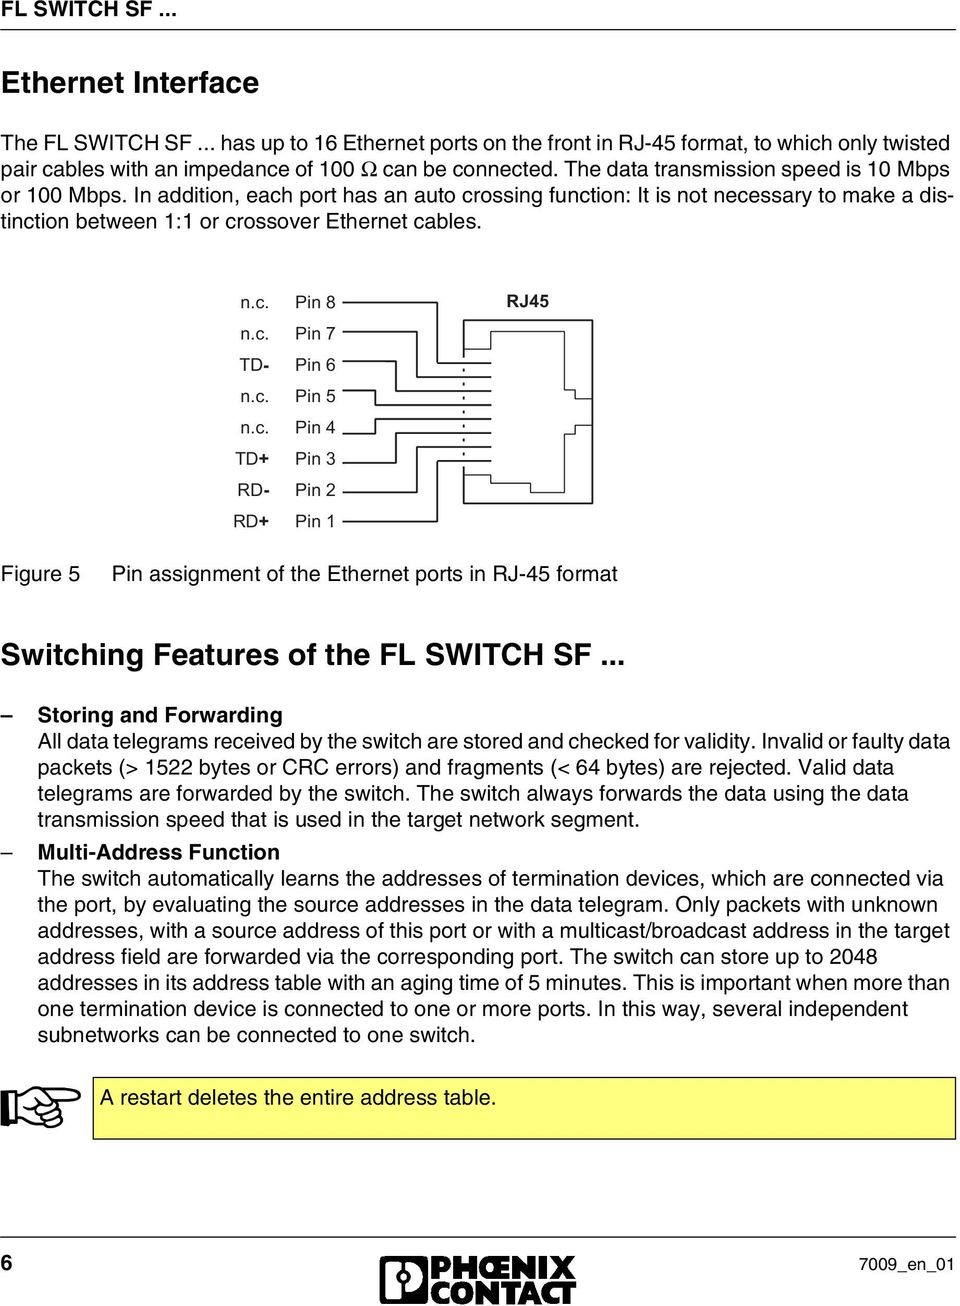 "? 6, 4, 4, 2 E & 2 E % 2 E $ 2 E # 2 E "" 2 E! 2 E 2 E 4 "" # Figure 5 Pin assignment of the Ethernet ports in RJ-45 format Switching Features of the FL SWITCH SF."